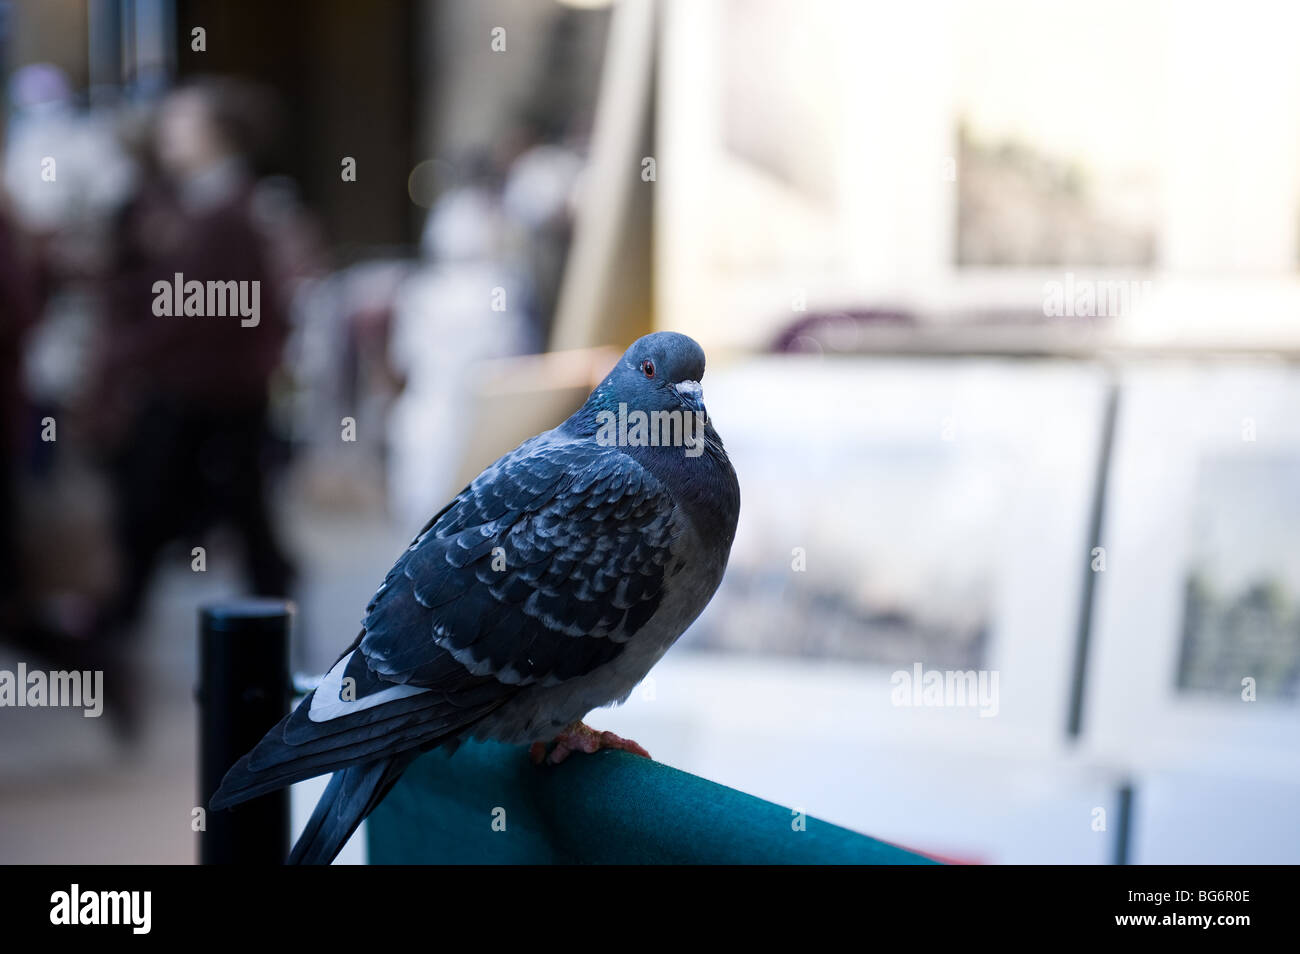 A feral pigeon perched on a handrail in London.  Photo by Gordon Scammell - Stock Image